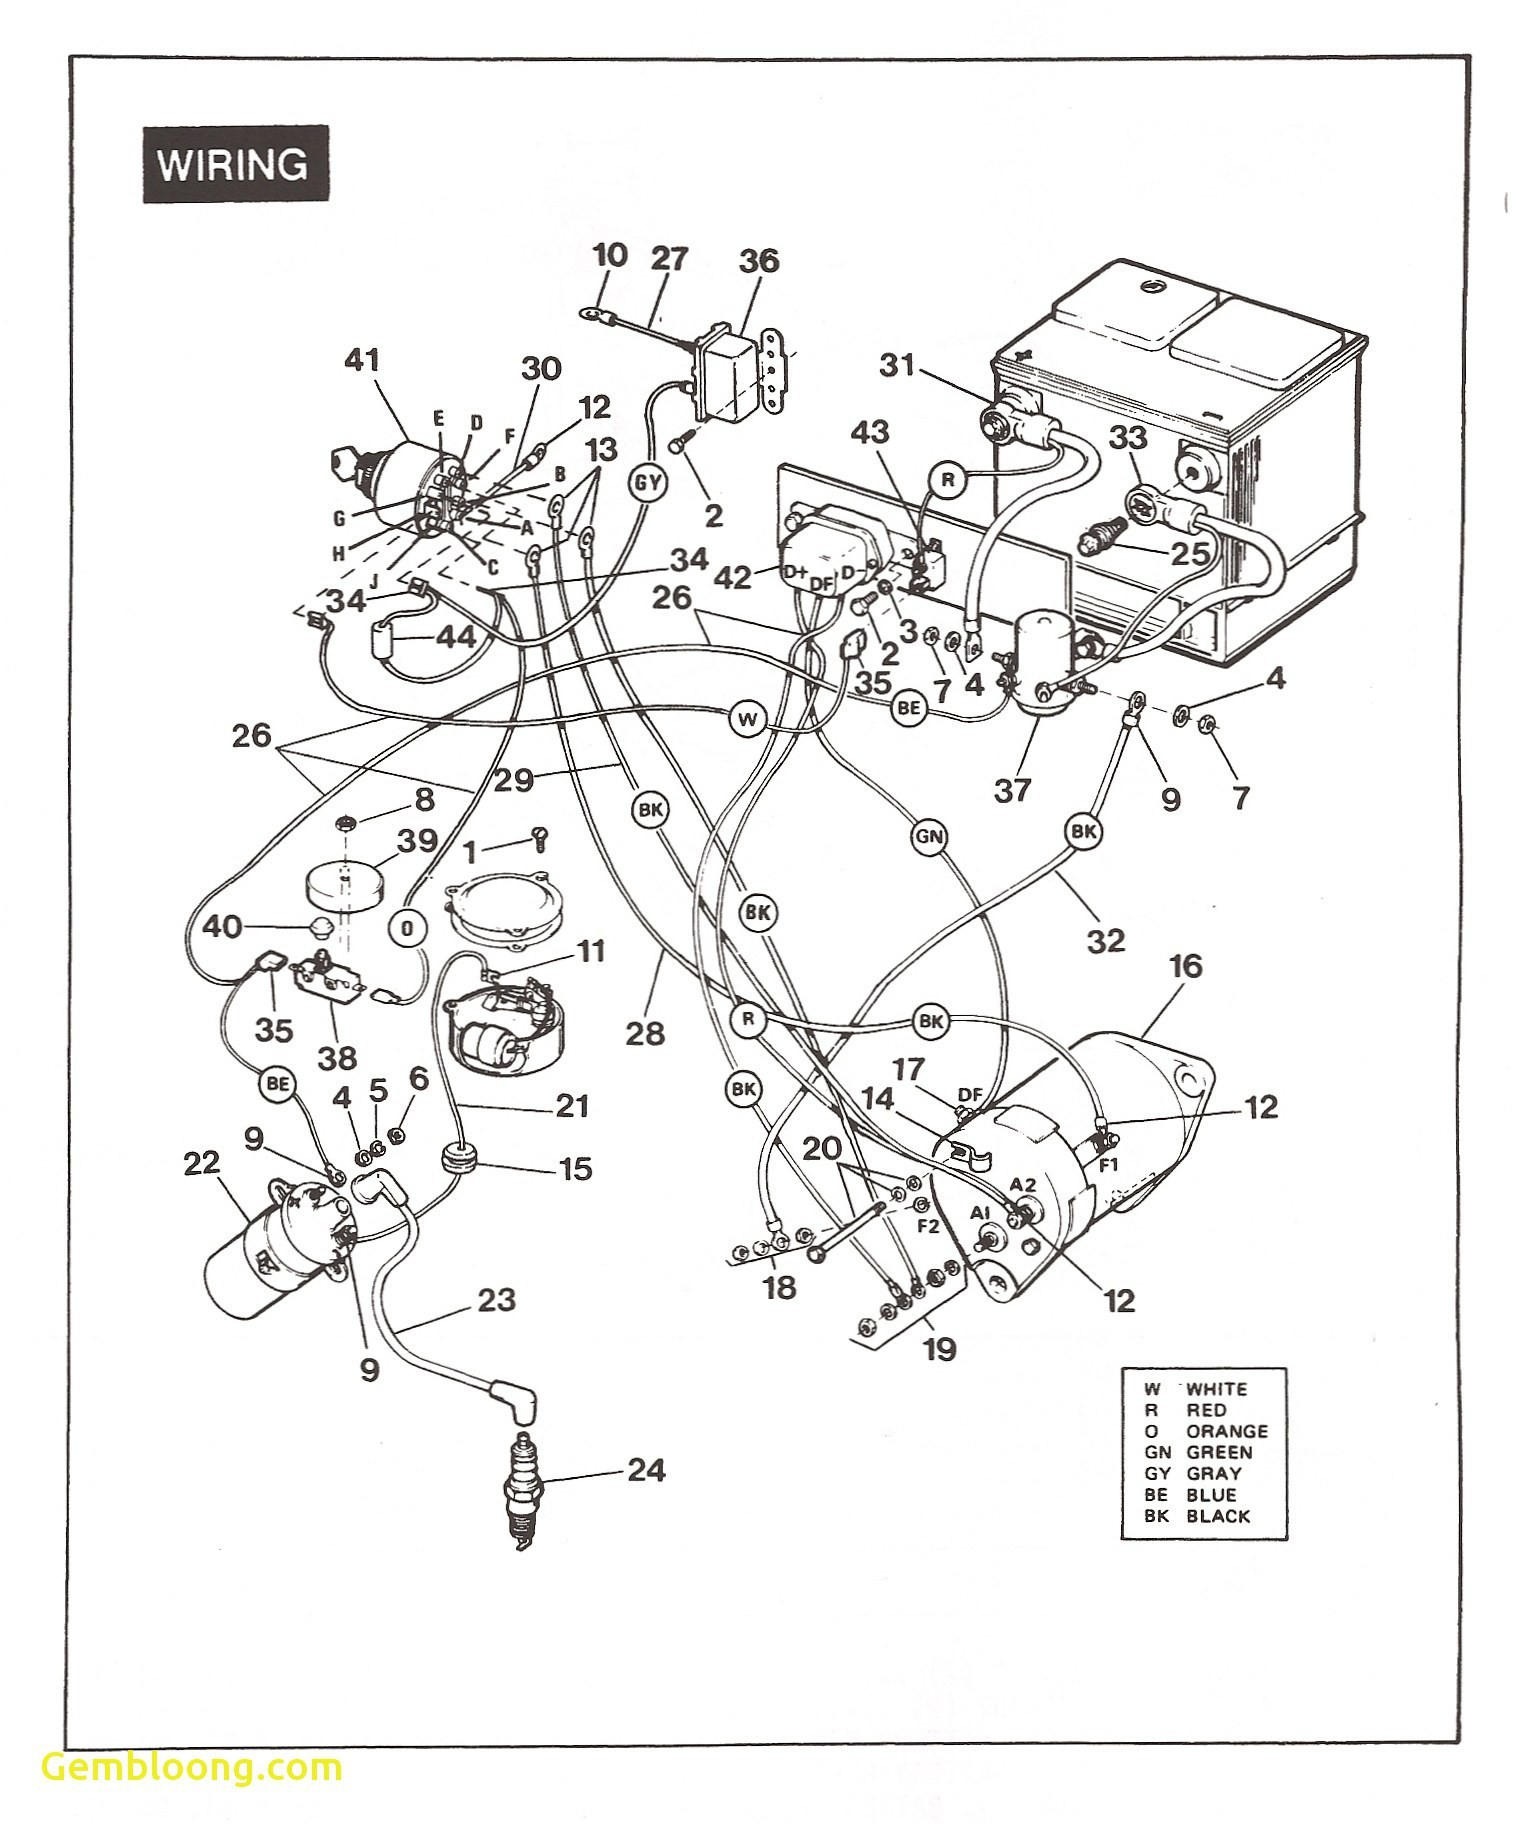 Jeep Wrangler Wiring Diagram Also Maytag Neptune Washer Wiring Diagram